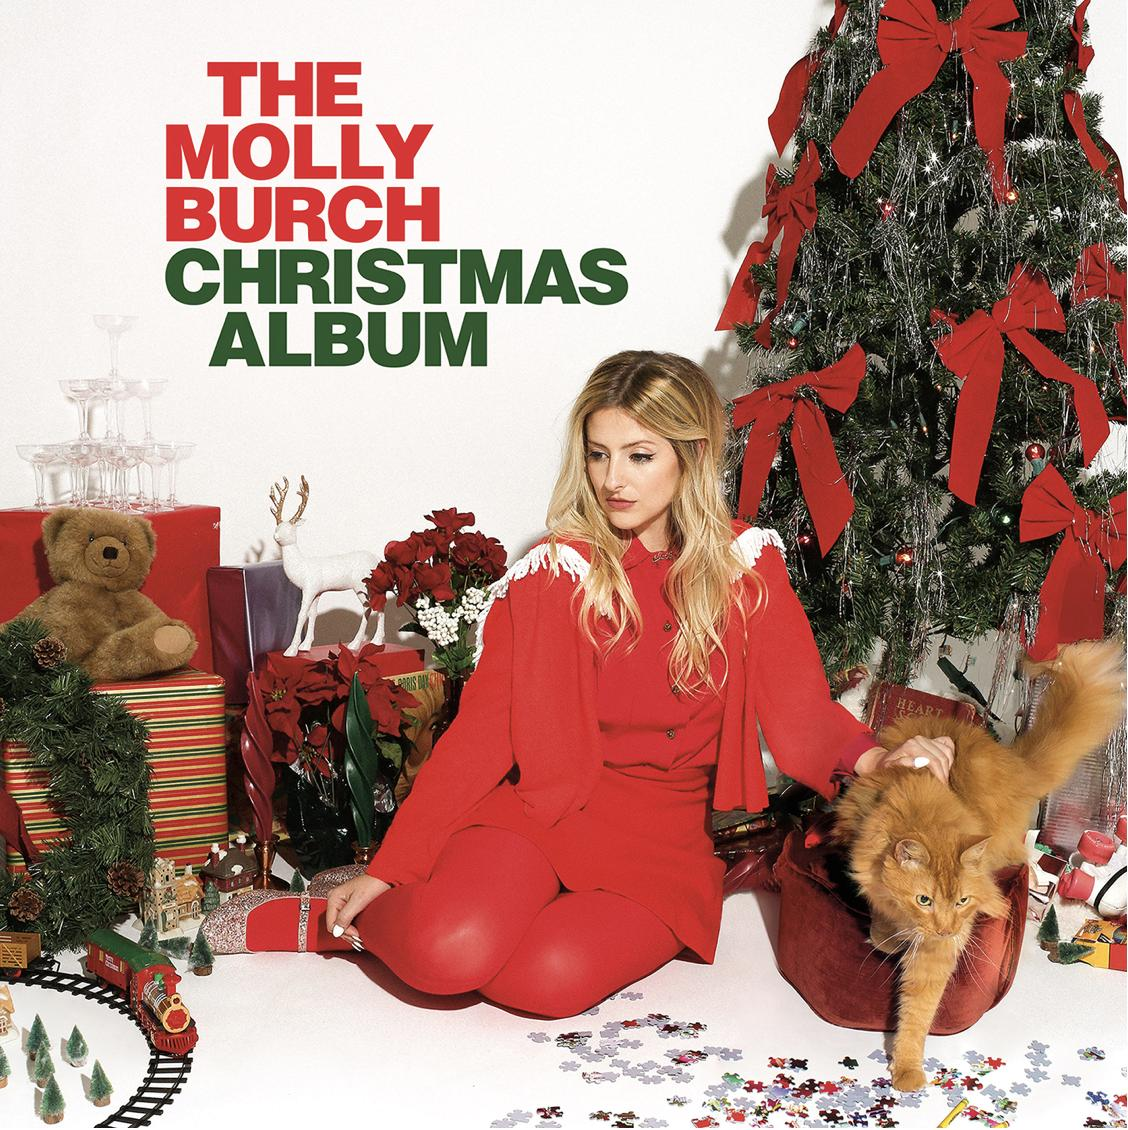 @mollyjburch IS RELEASING A CHRISTMAS ALBUM. REPEAT: MOLLY BURCH IS RELEASING A CHRISTMAS ALBUM. THIS IS NOT A DRILL. OUT NOV 15 @capturedtracks TRACKS https://t.co/Gjl12cgo3o